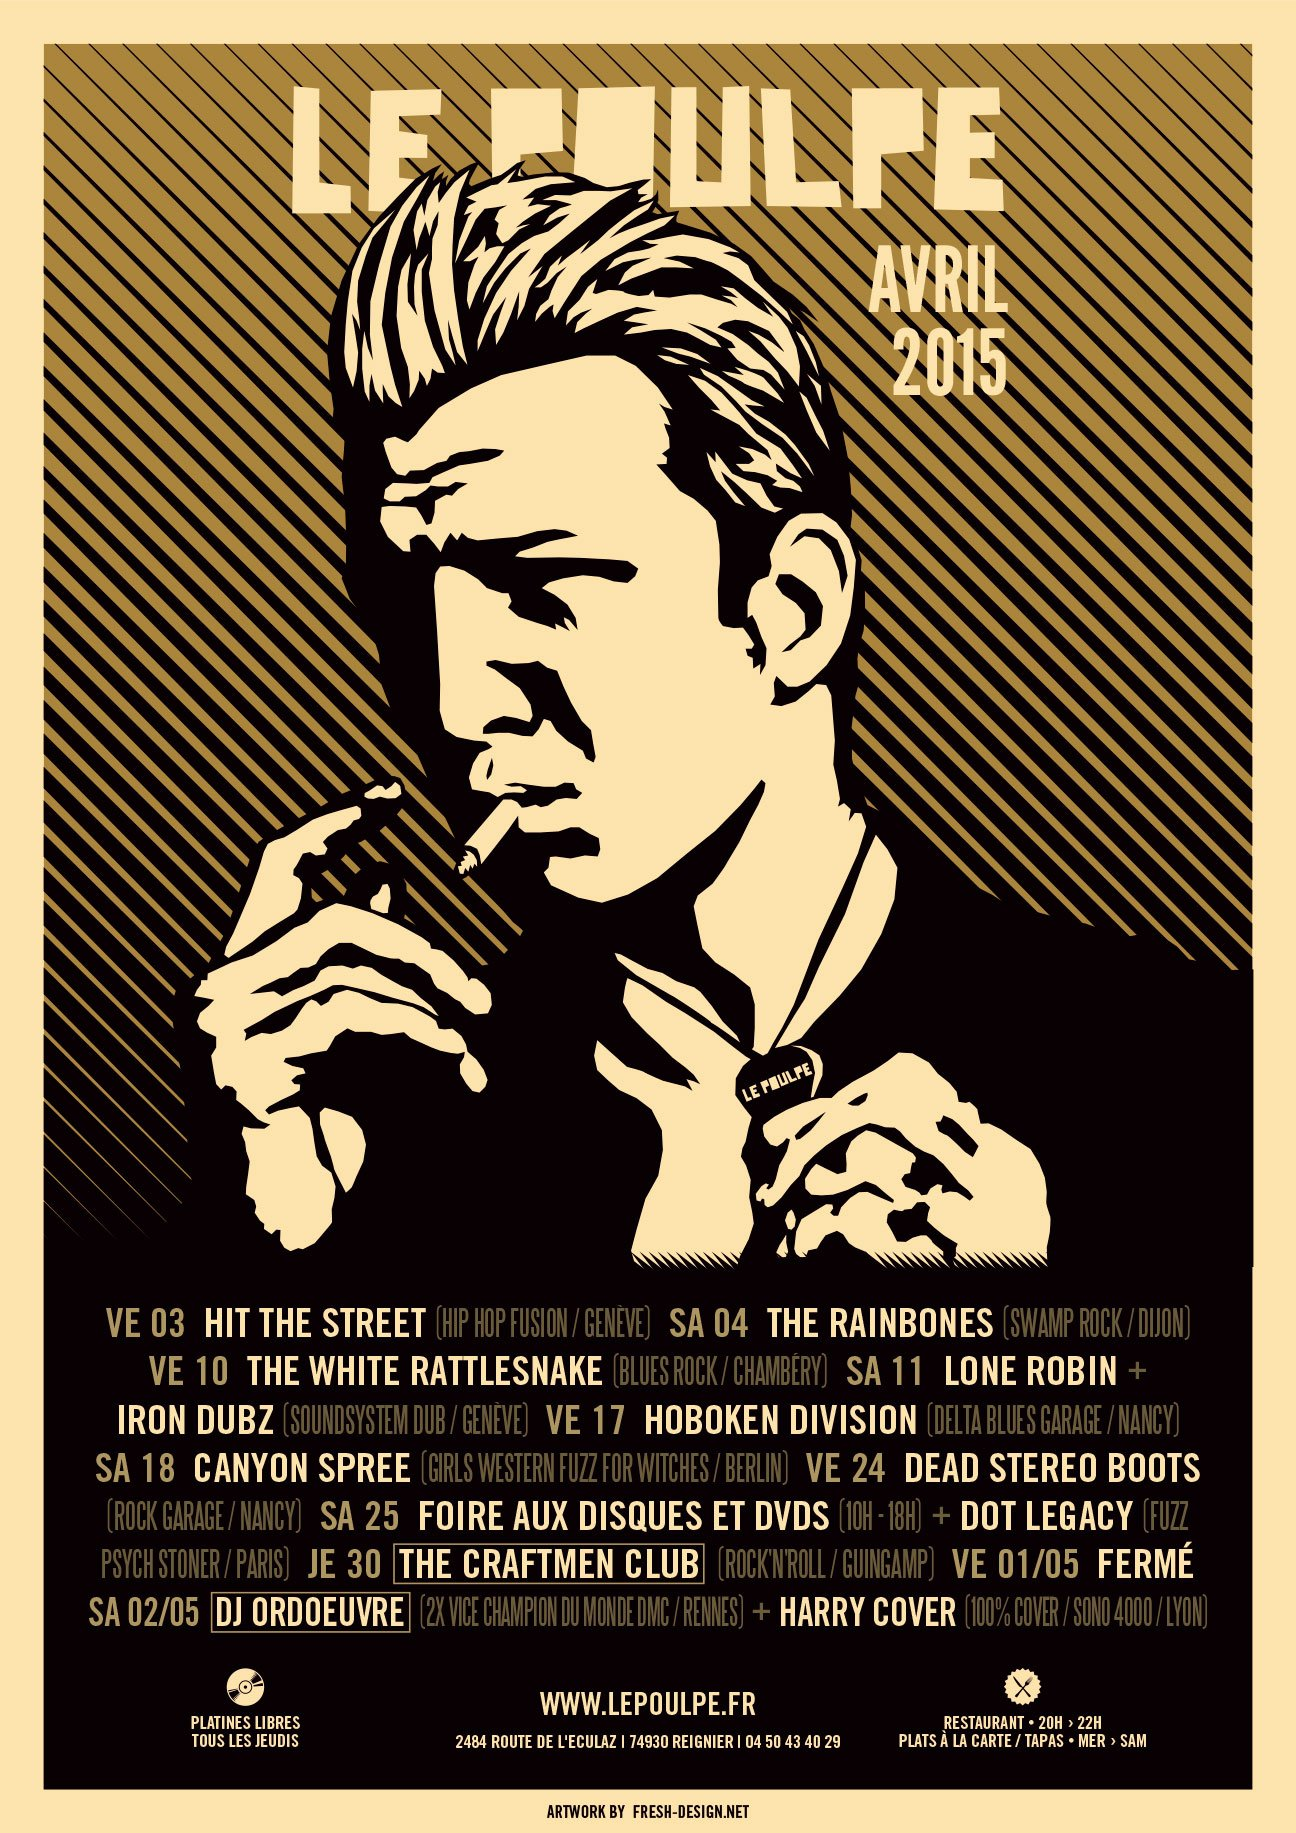 Fabien_cuffel_LePoulpe_Resto_Bar_Concert_Affiche_2015_Josh-Homme_Queen-of-the-stone-age